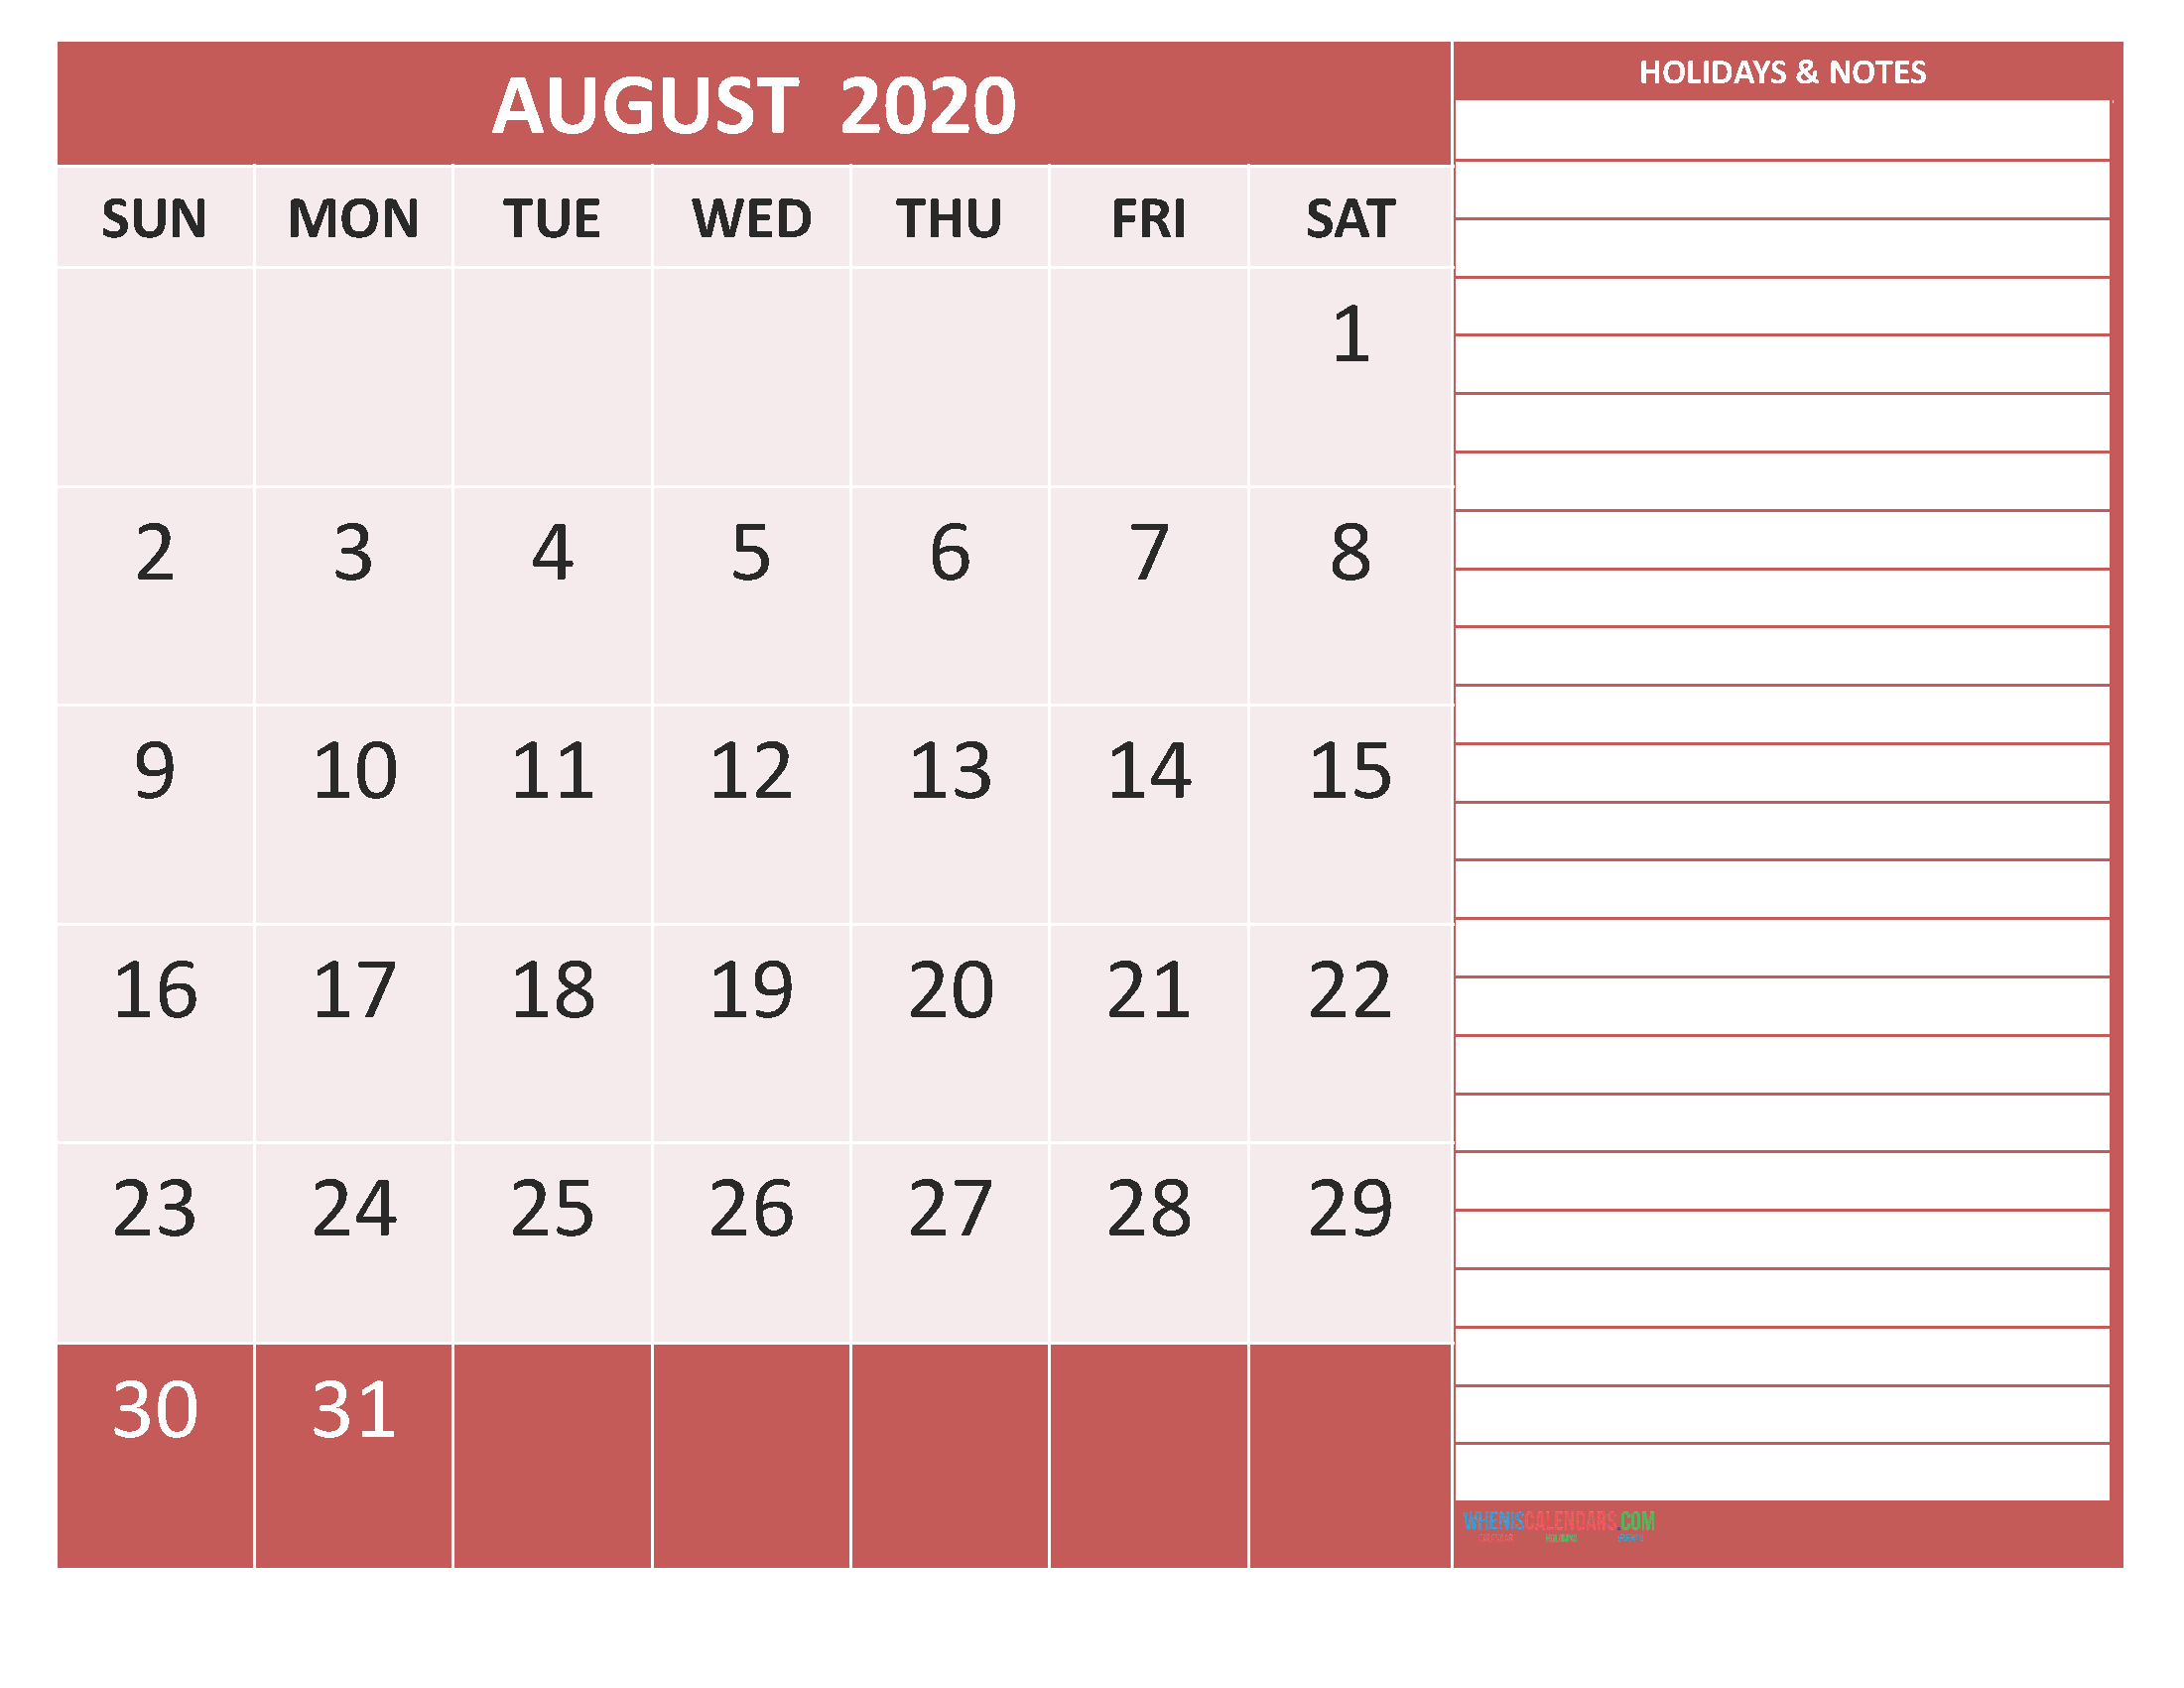 Free Printable Monthly Calendar 2020 August with Holidays